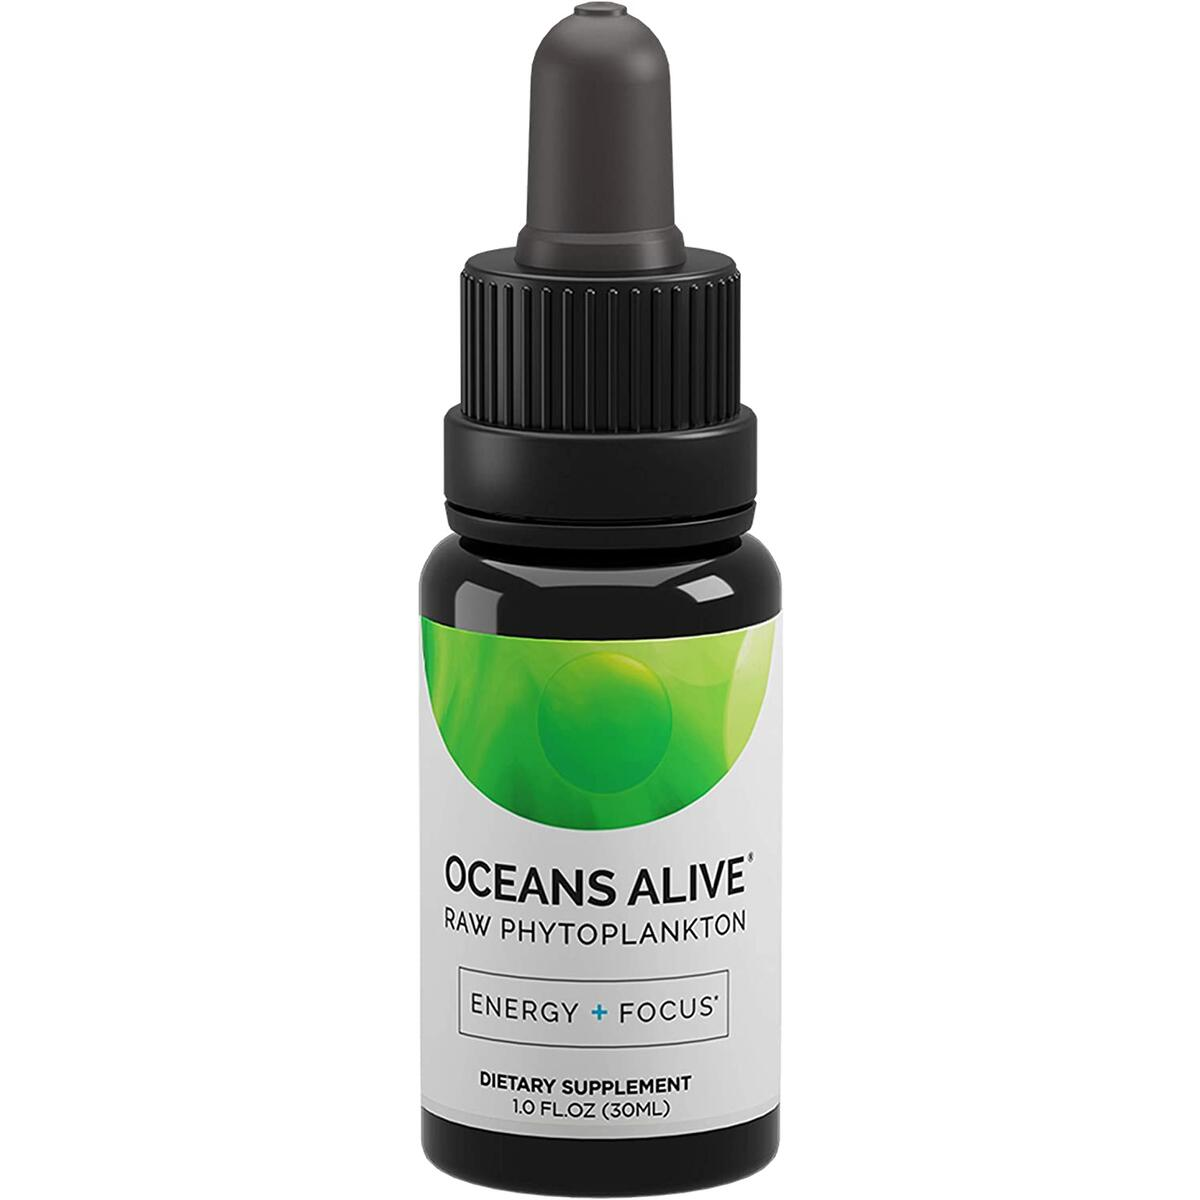 Activation Products Oceans Alive Marine Phytoplankton - Pure Phytoplankton Supplement Boosts Mind and Energy - Ultimate Contaminant Free Superfood, 30ml